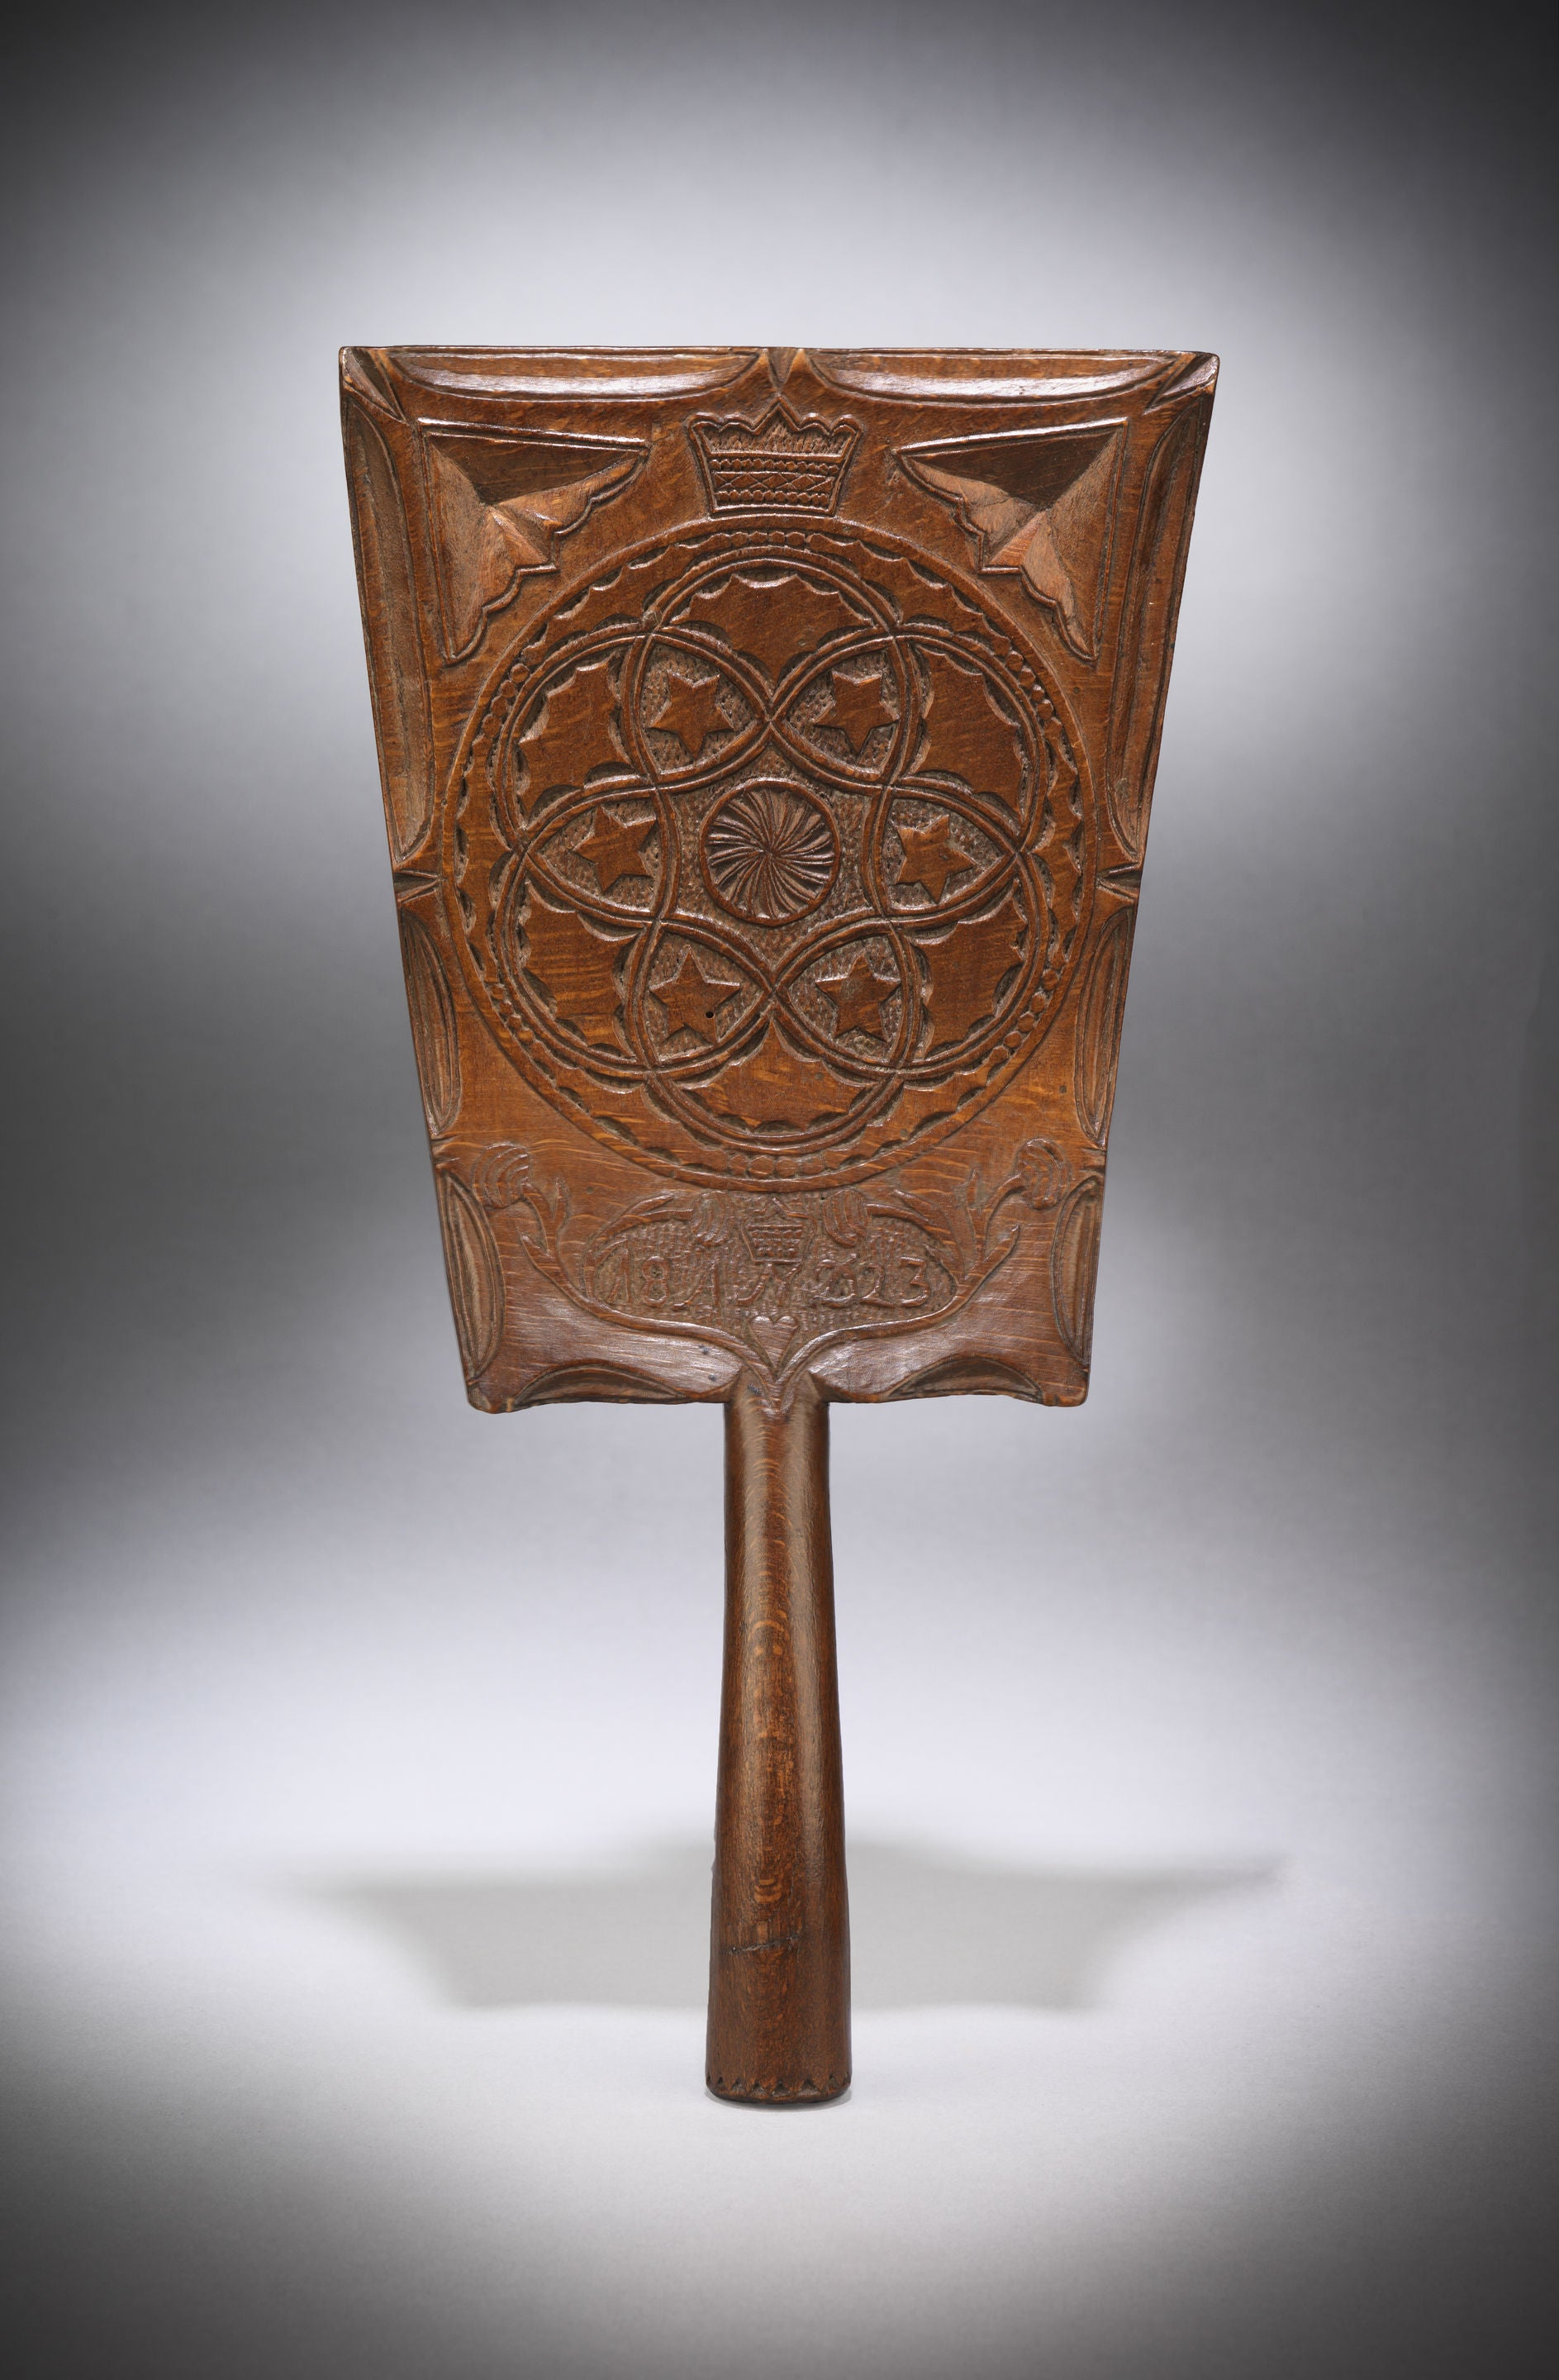 A Decoratively Carved Love Token Washing Bat